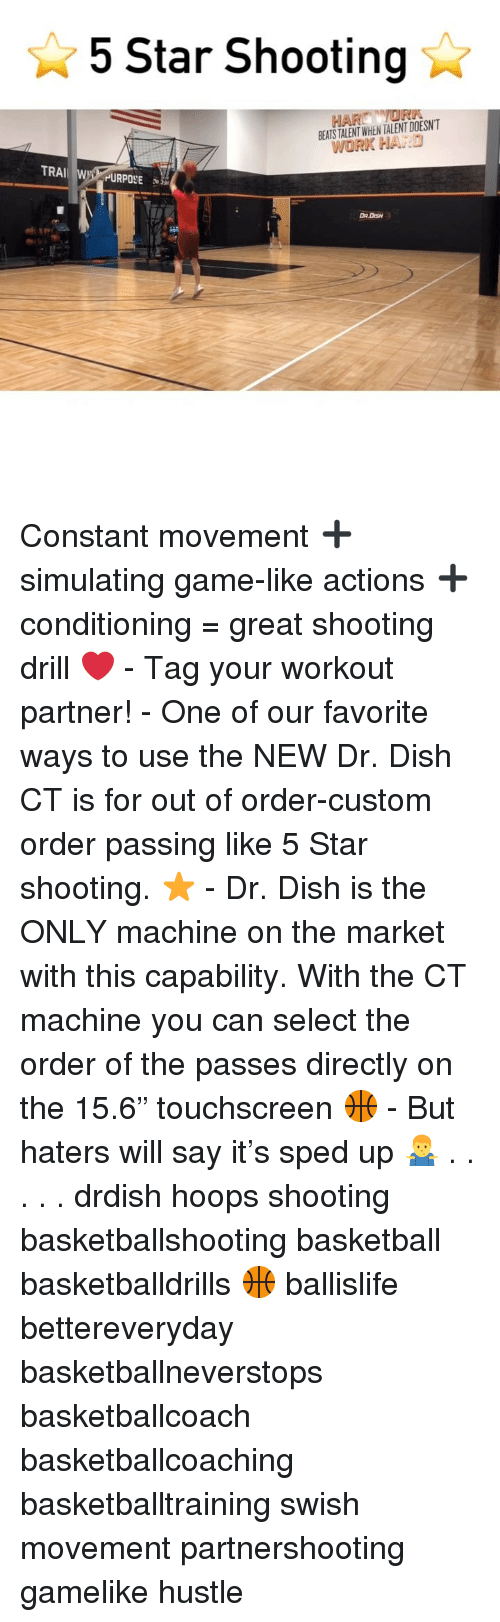 """Basketball, Memes, and Say It: 5 Star Shooting  BEATS TALENT WHEN TALENT DOESNT  WORK HARD  TRAI WY PURPOSE  DR.DISH Constant movement ➕ simulating game-like actions ➕ conditioning = great shooting drill ❤️ - Tag your workout partner! - One of our favorite ways to use the NEW Dr. Dish CT is for out of order-custom order passing like 5 Star shooting. ⭐️ - Dr. Dish is the ONLY machine on the market with this capability. With the CT machine you can select the order of the passes directly on the 15.6"""" touchscreen 🏀 - But haters will say it's sped up 🤷♂️ . . . . . drdish hoops shooting basketballshooting basketball basketballdrills 🏀 ballislife bettereveryday basketballneverstops basketballcoach basketballcoaching basketballtraining swish movement partnershooting gamelike hustle"""